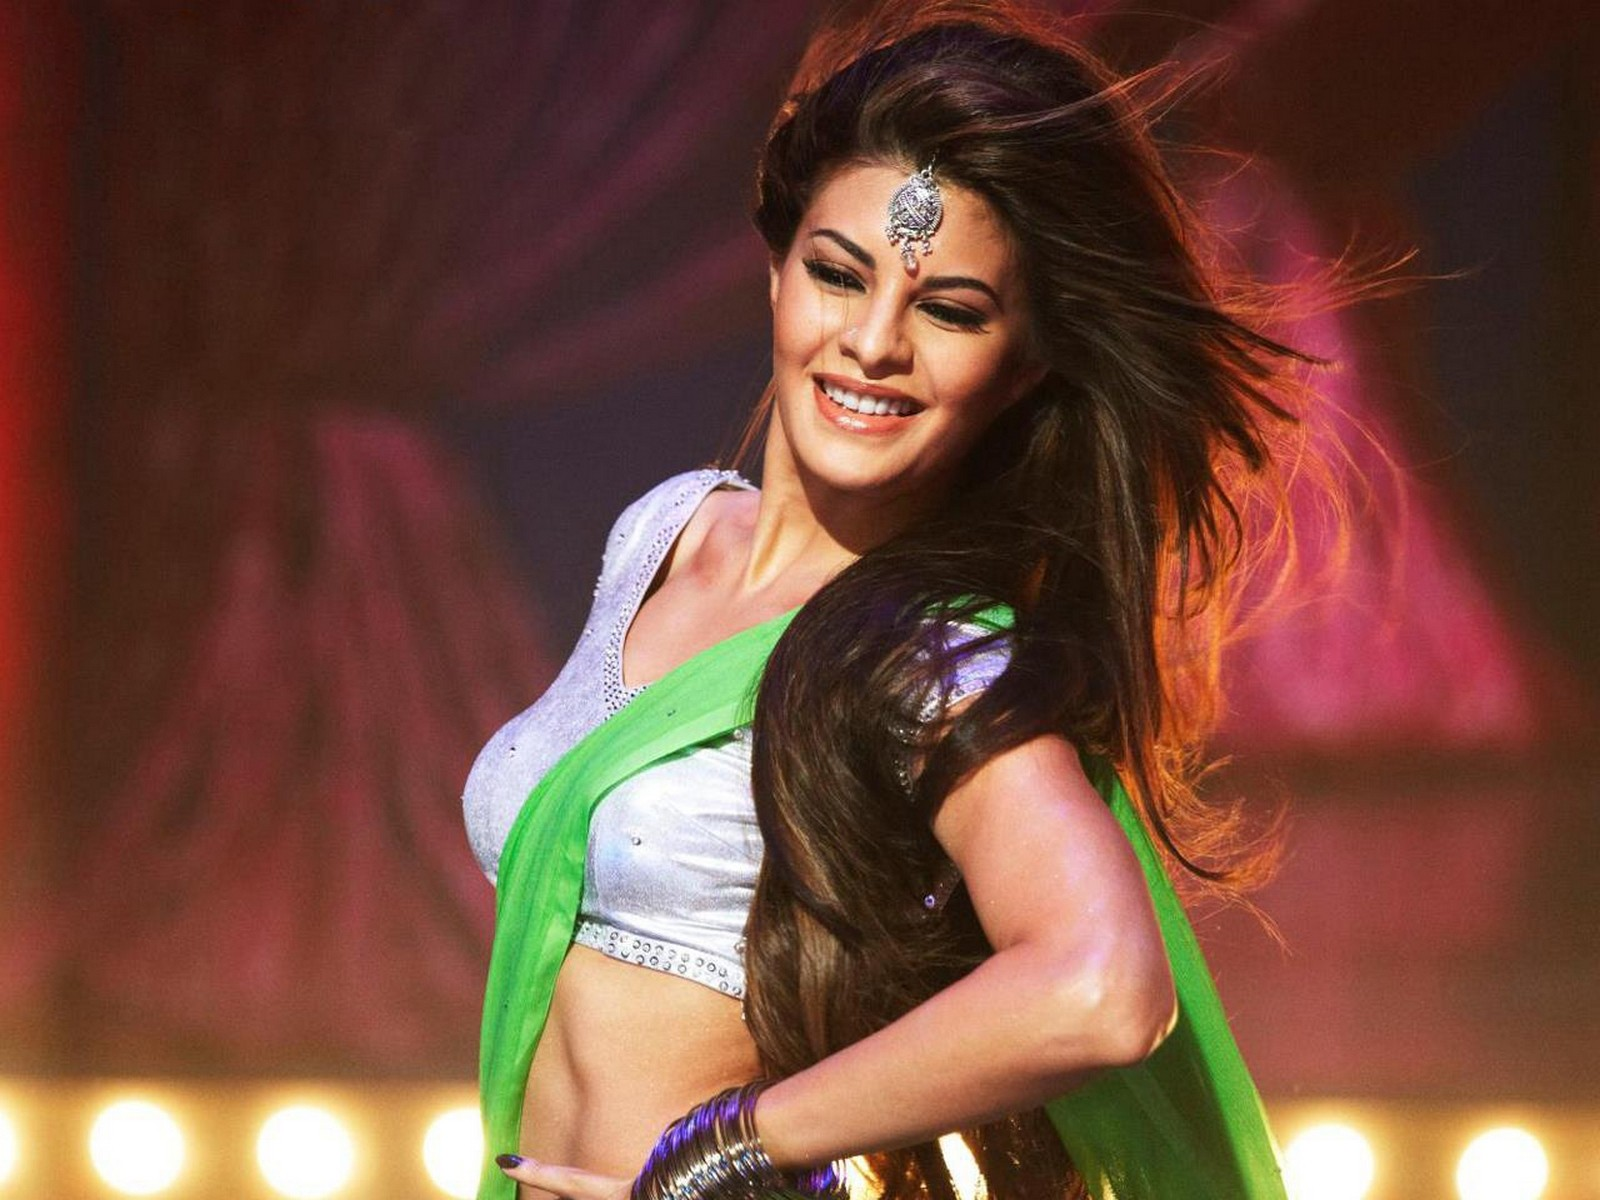 Jacqueline Fernandez Hot Spicy In Bikini Photos & Wallpapers